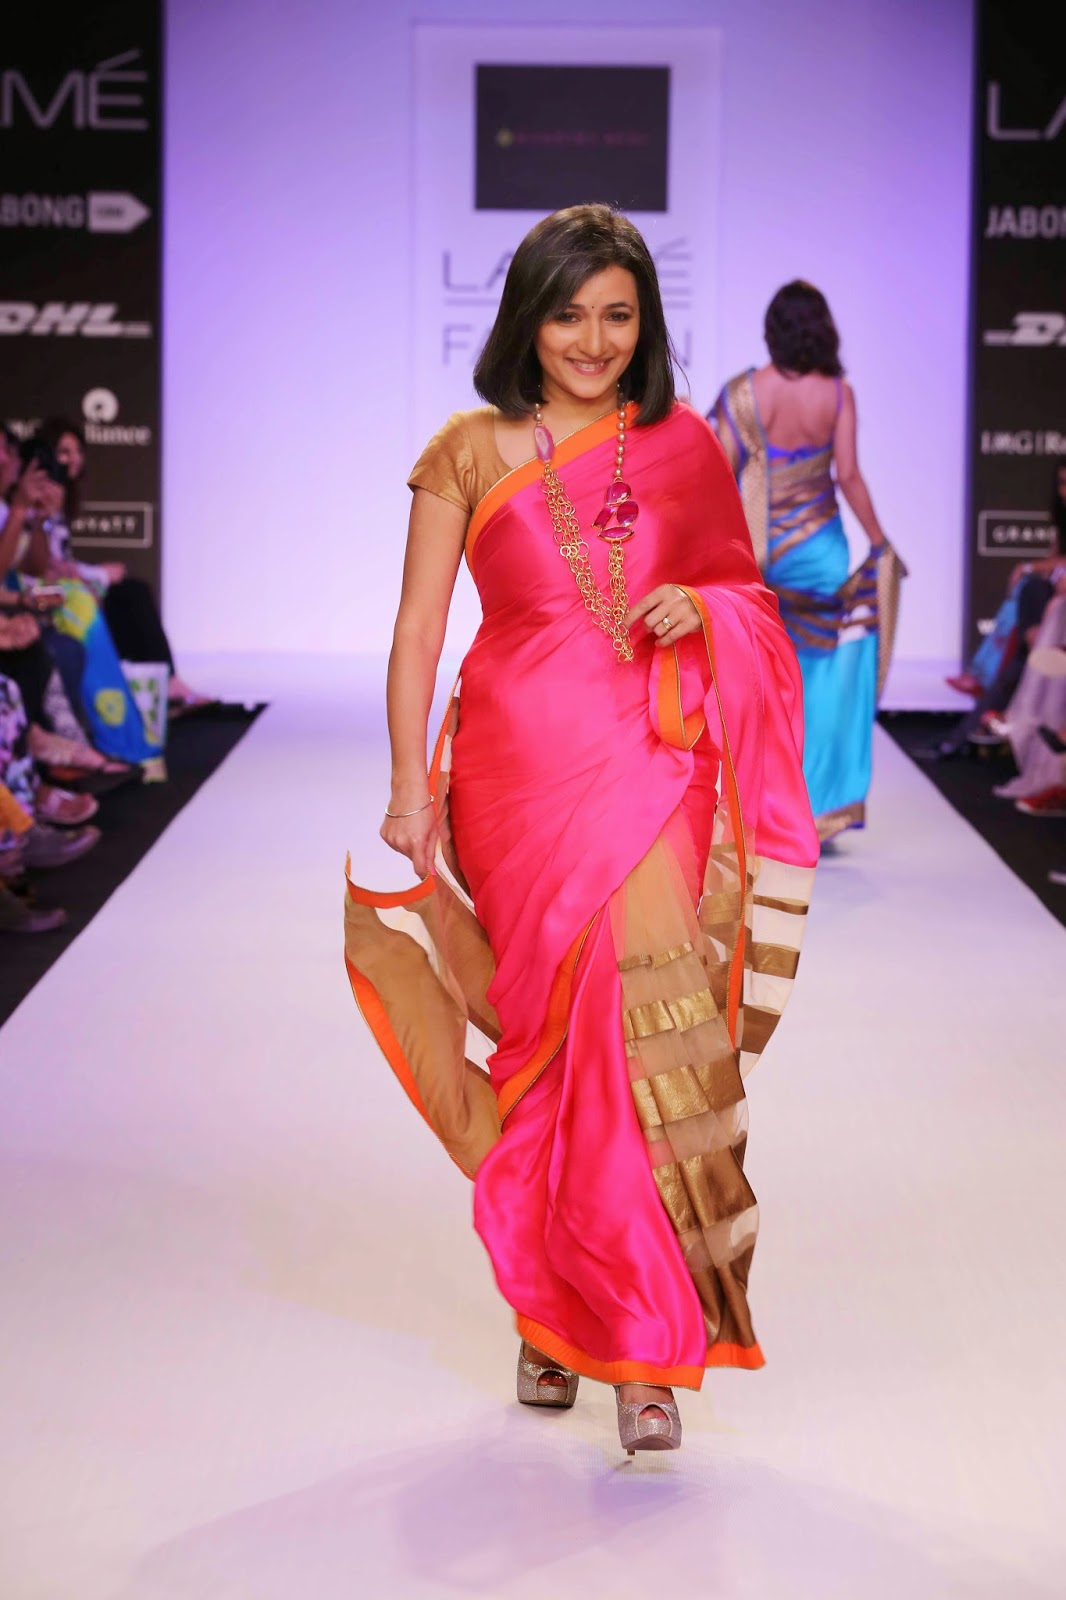 It was a parade of real life superstars wearing real life saris.